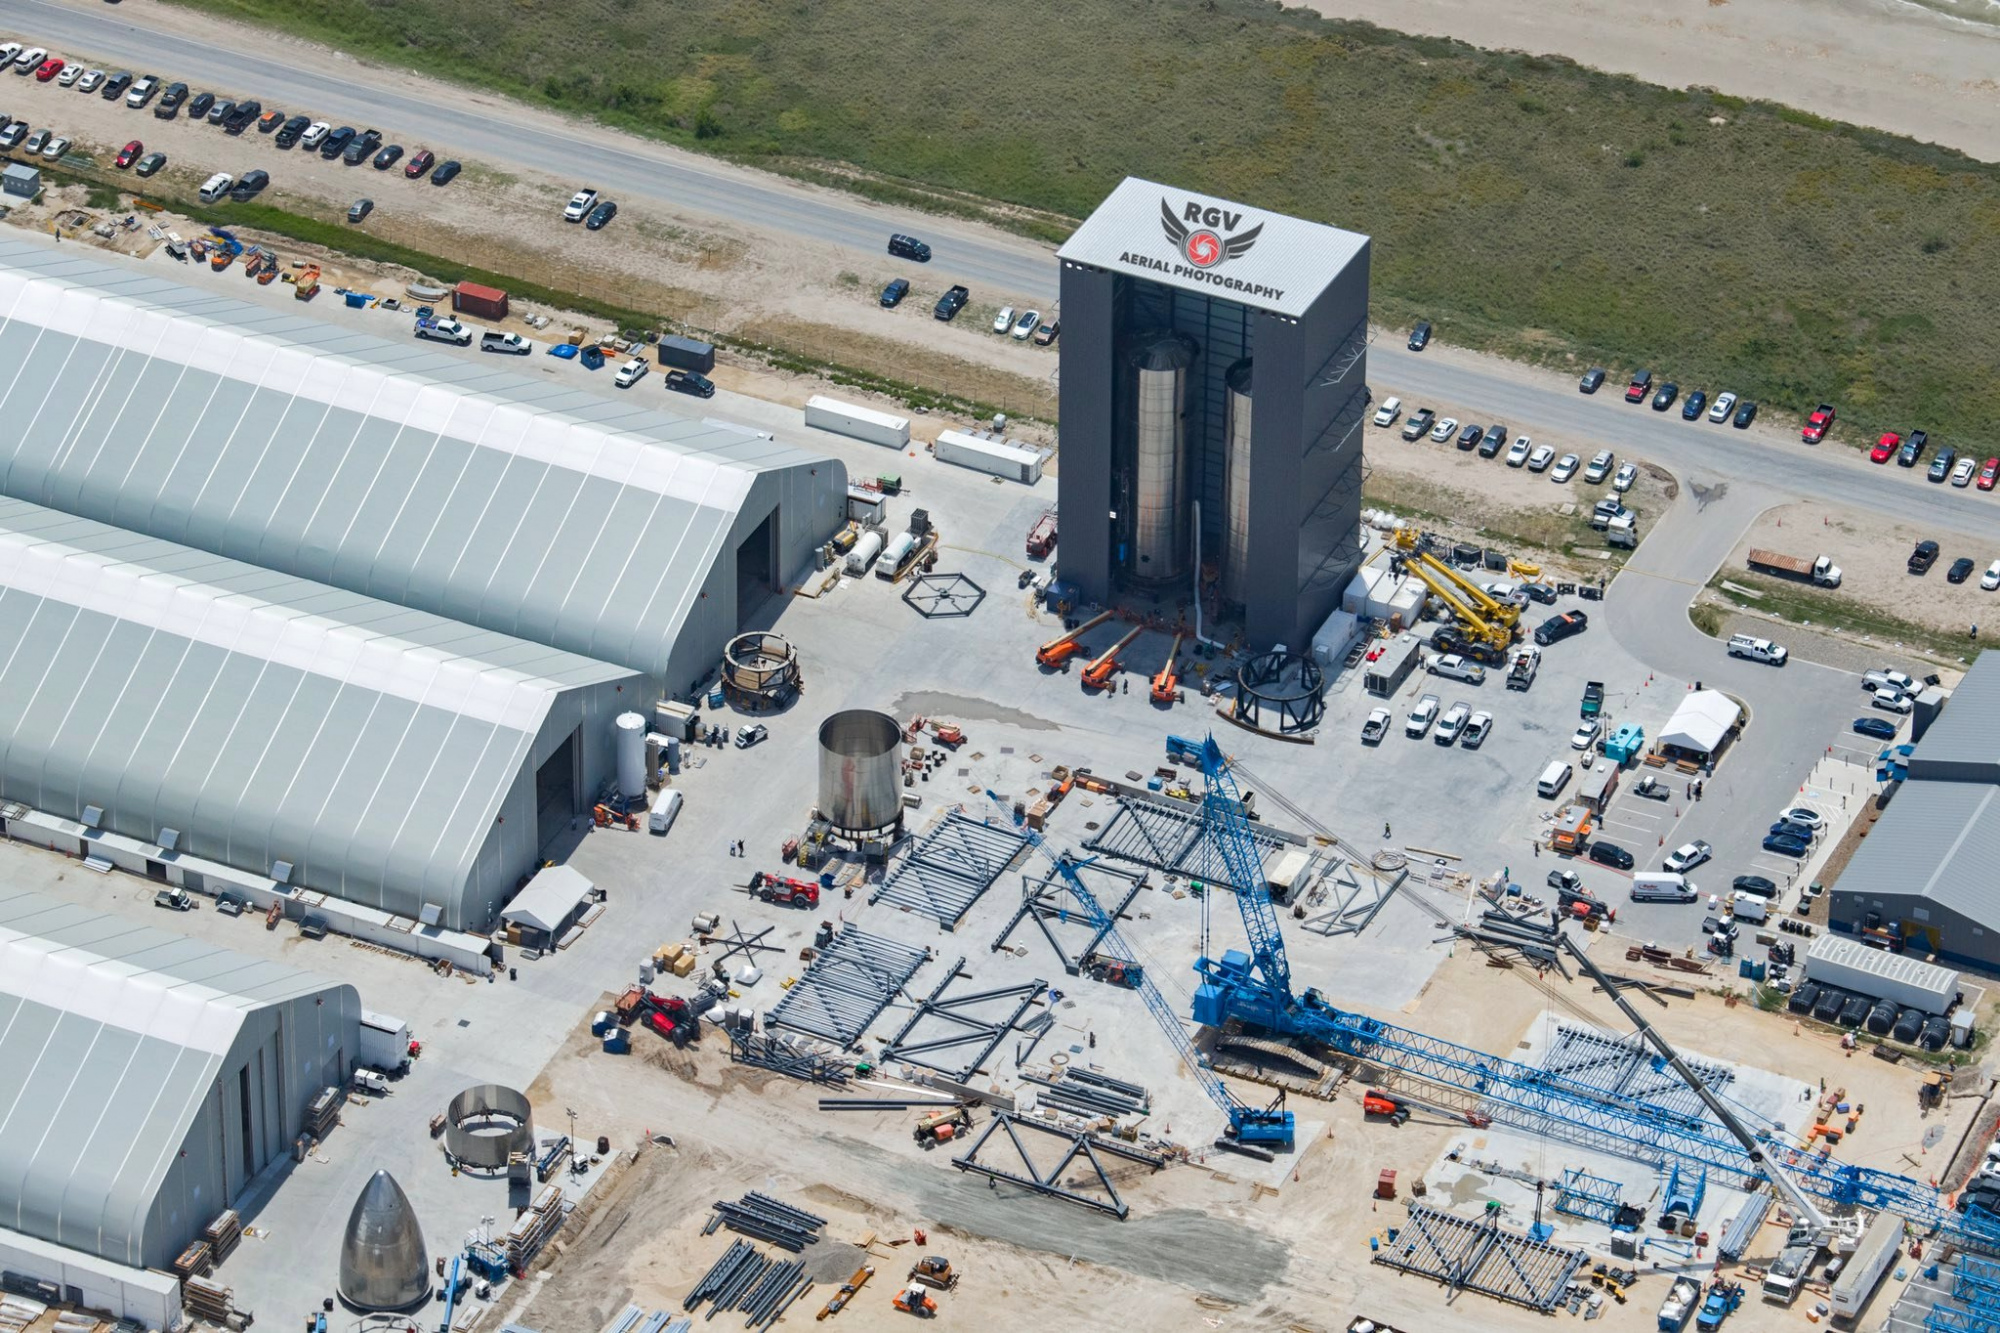 SpaceX_BocaChica_BuildSite_2020-06-23_6.thumb.jpg.37d53ad369a5b5ef5ad652be3c791f29.jpg